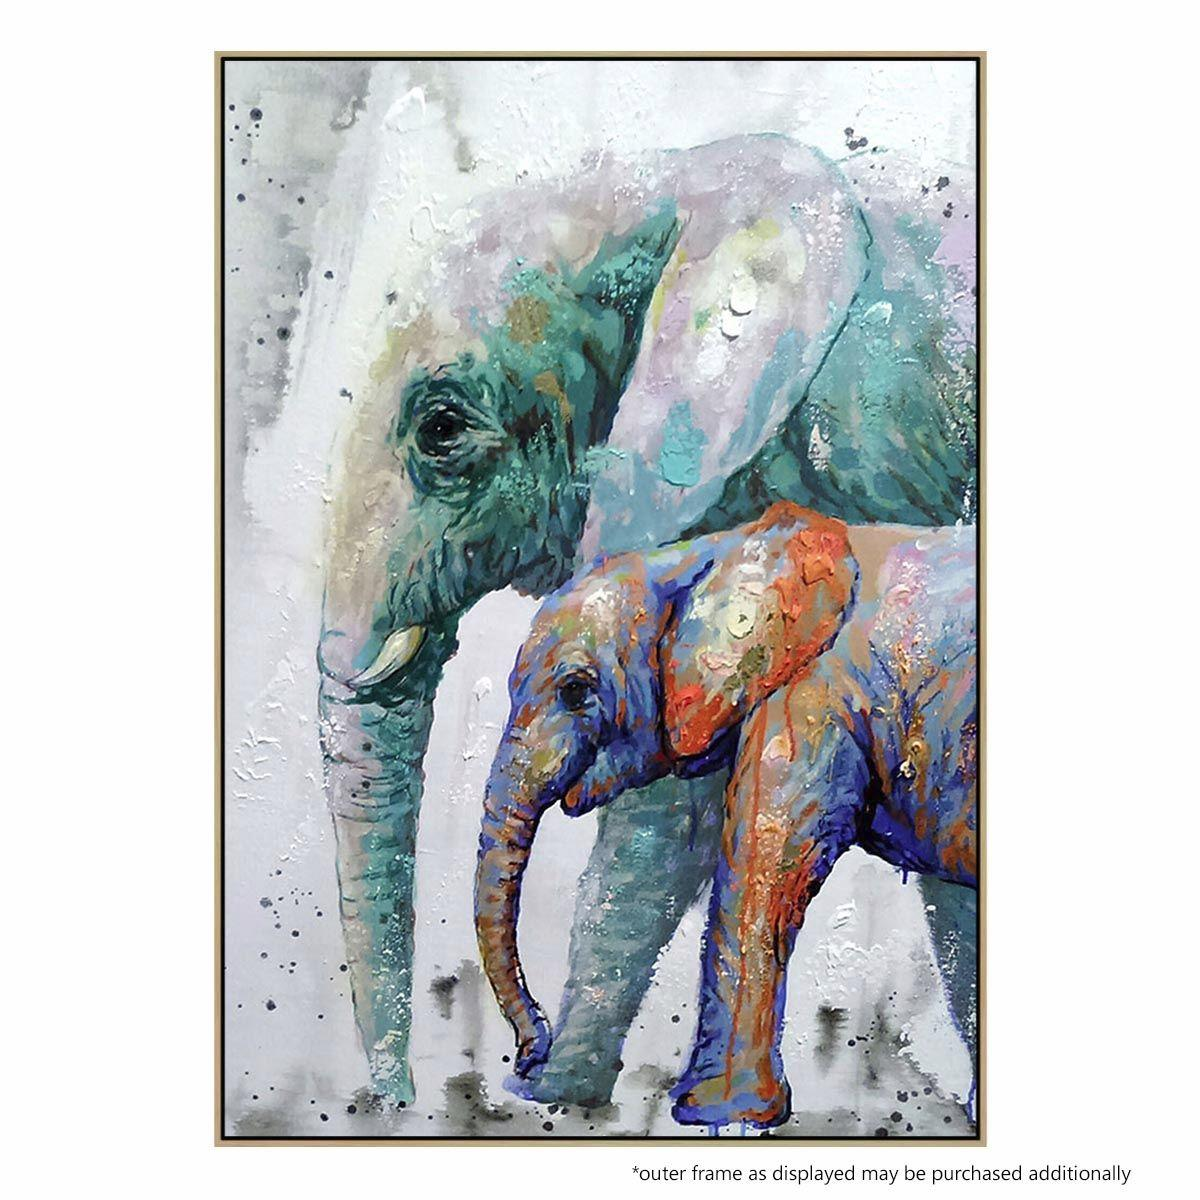 abstract elephant painting - Saman.cinetonic.co